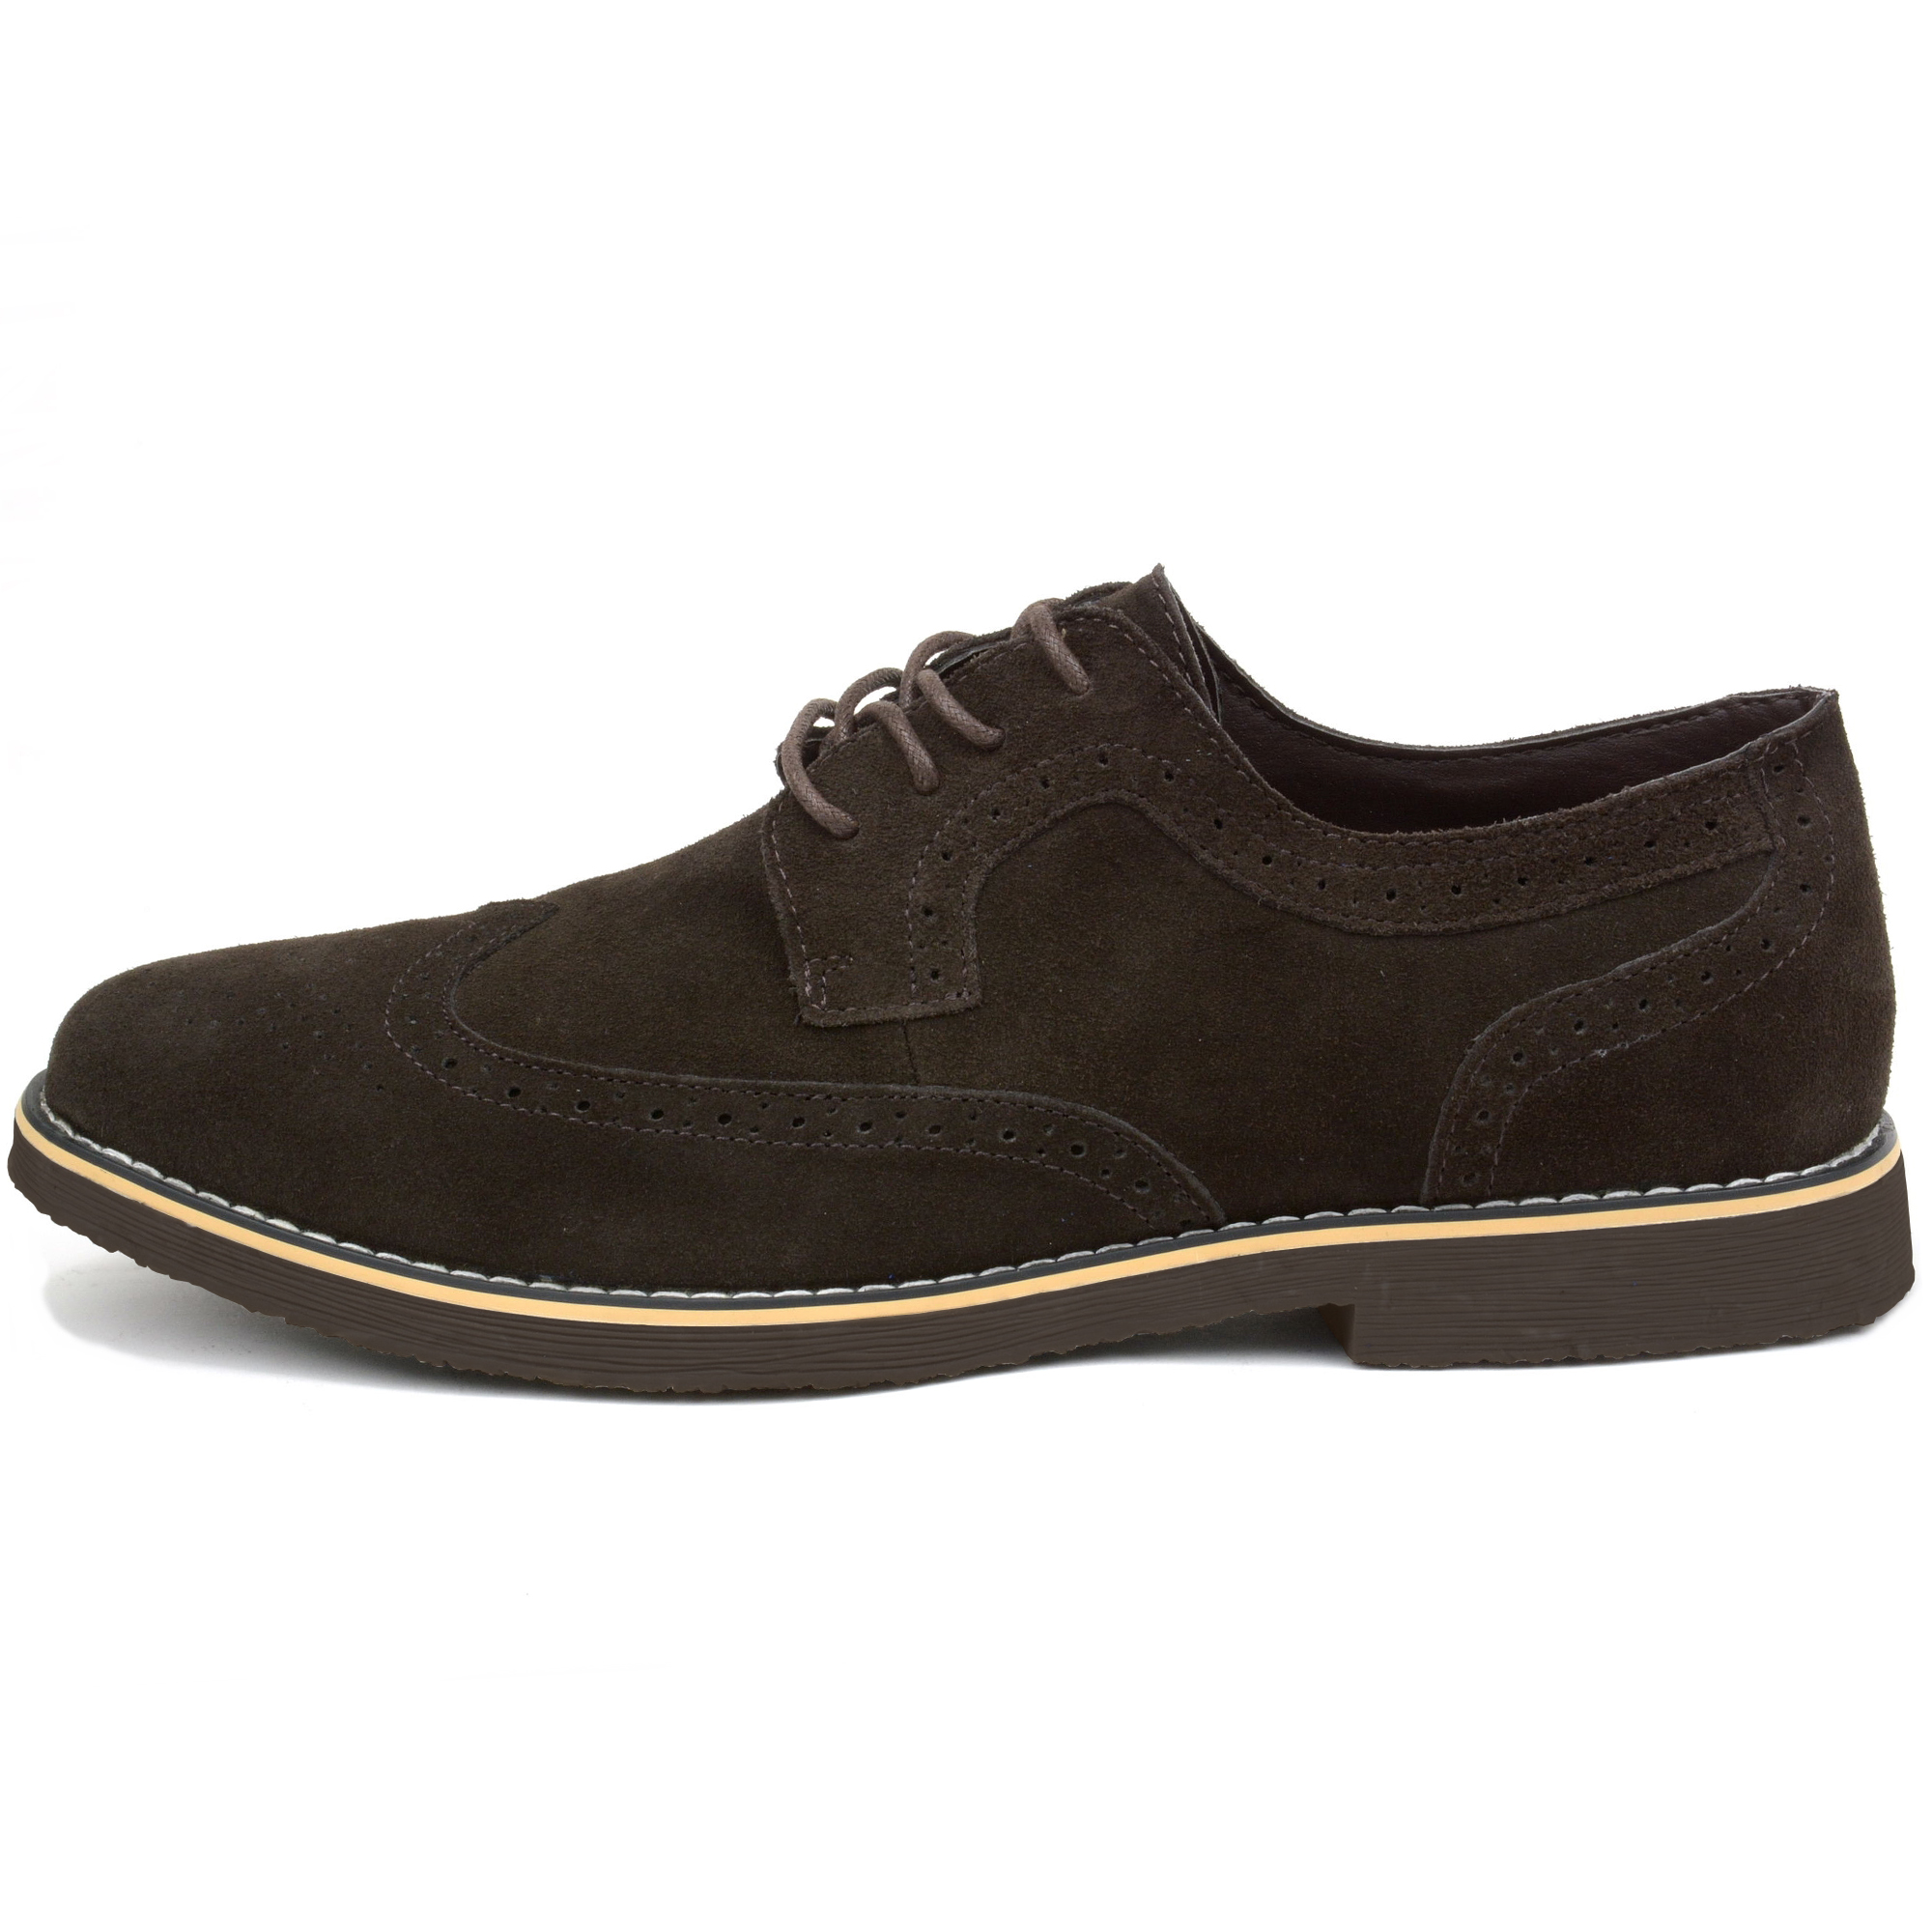 Alpine-Swiss-Beau-Mens-Dress-Shoes-Genuine-Suede-Wing-Tip-Brogue-Lace-Up-Oxfords thumbnail 35